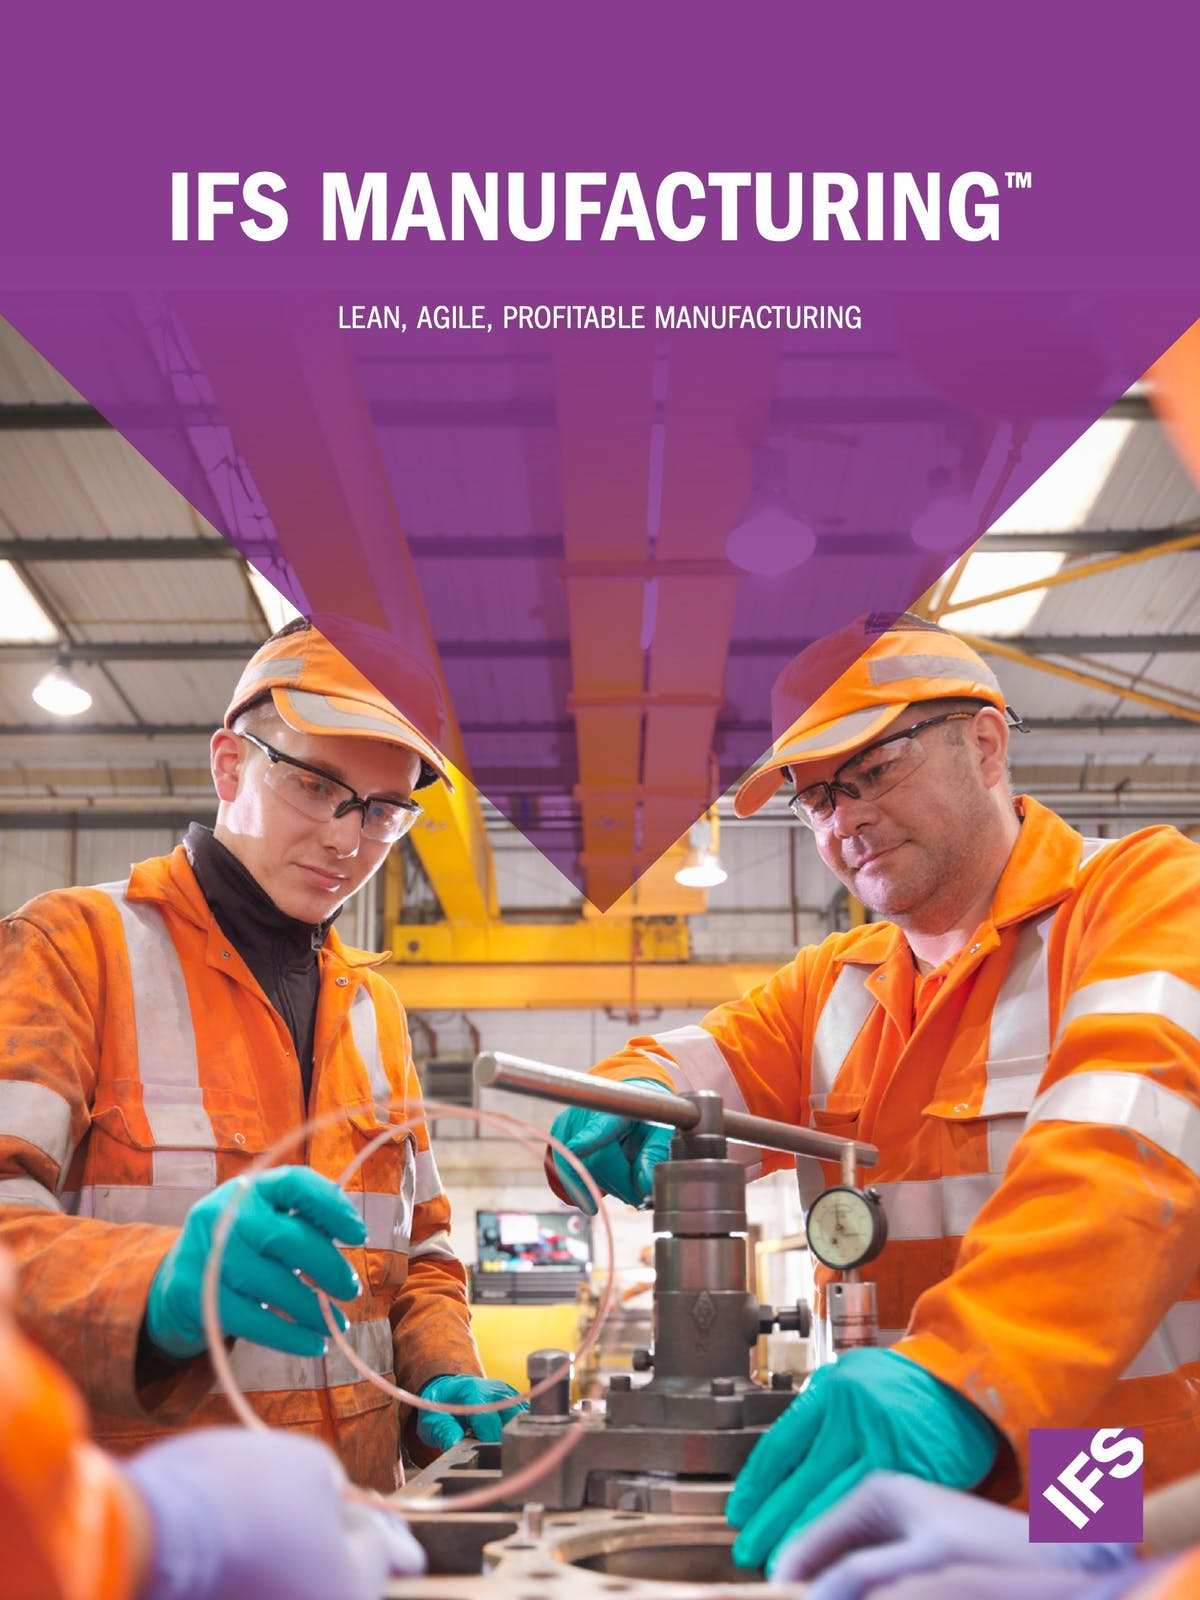 IFS Applications 10 White Paper - Lean, Agile, Profitable Manufacturing